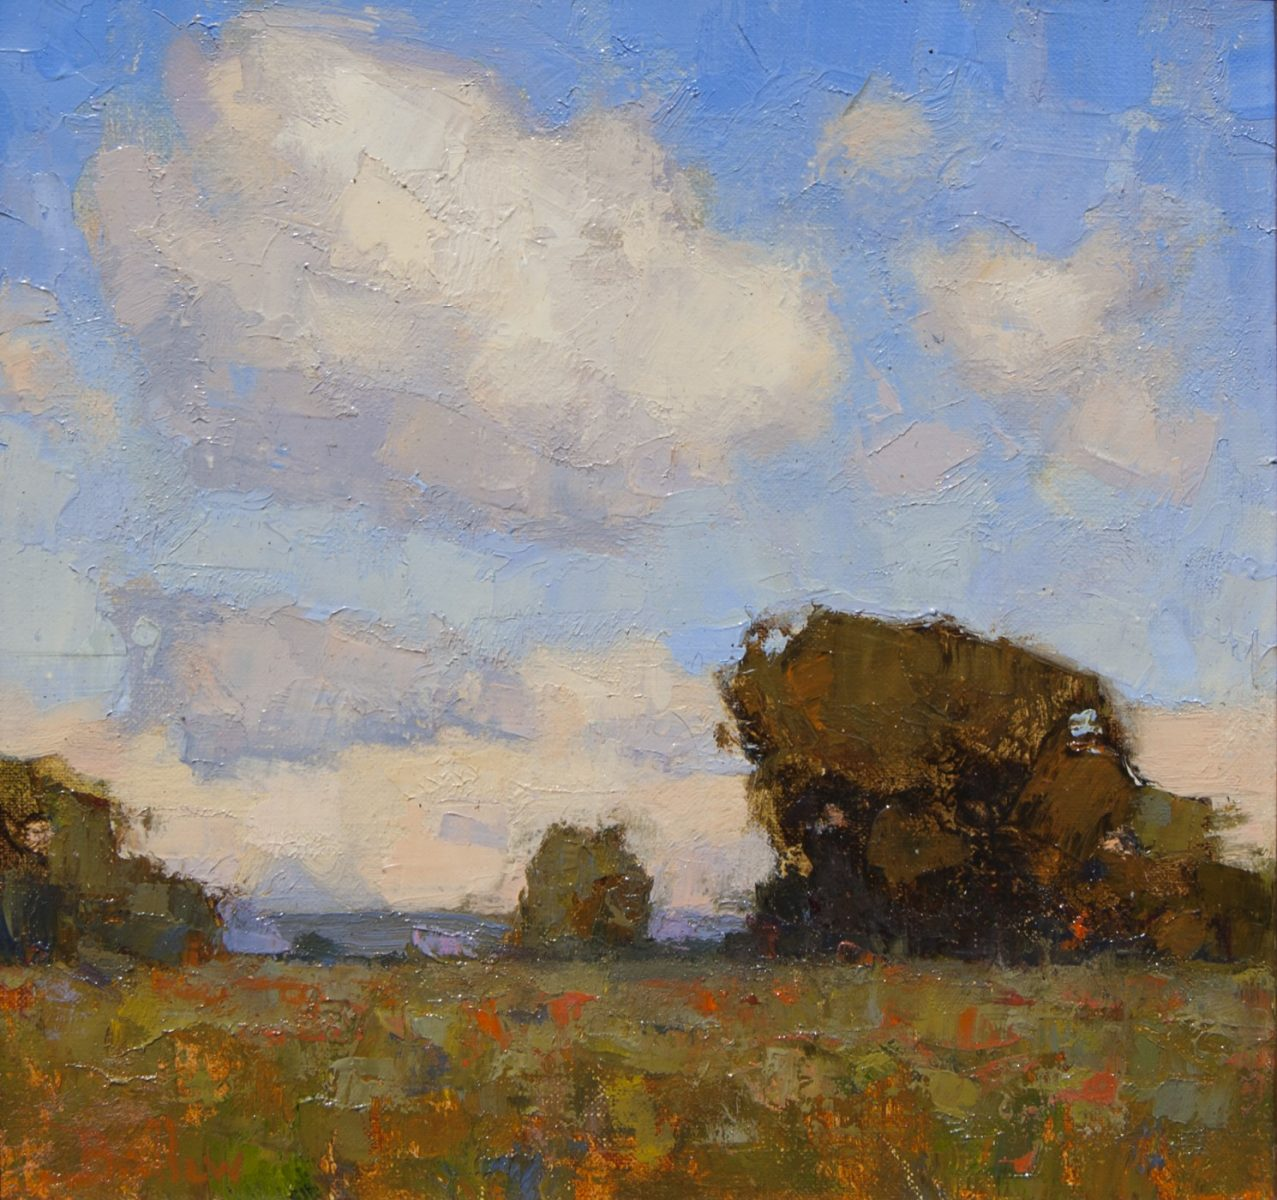 Summer Pastures painting by David Ballew